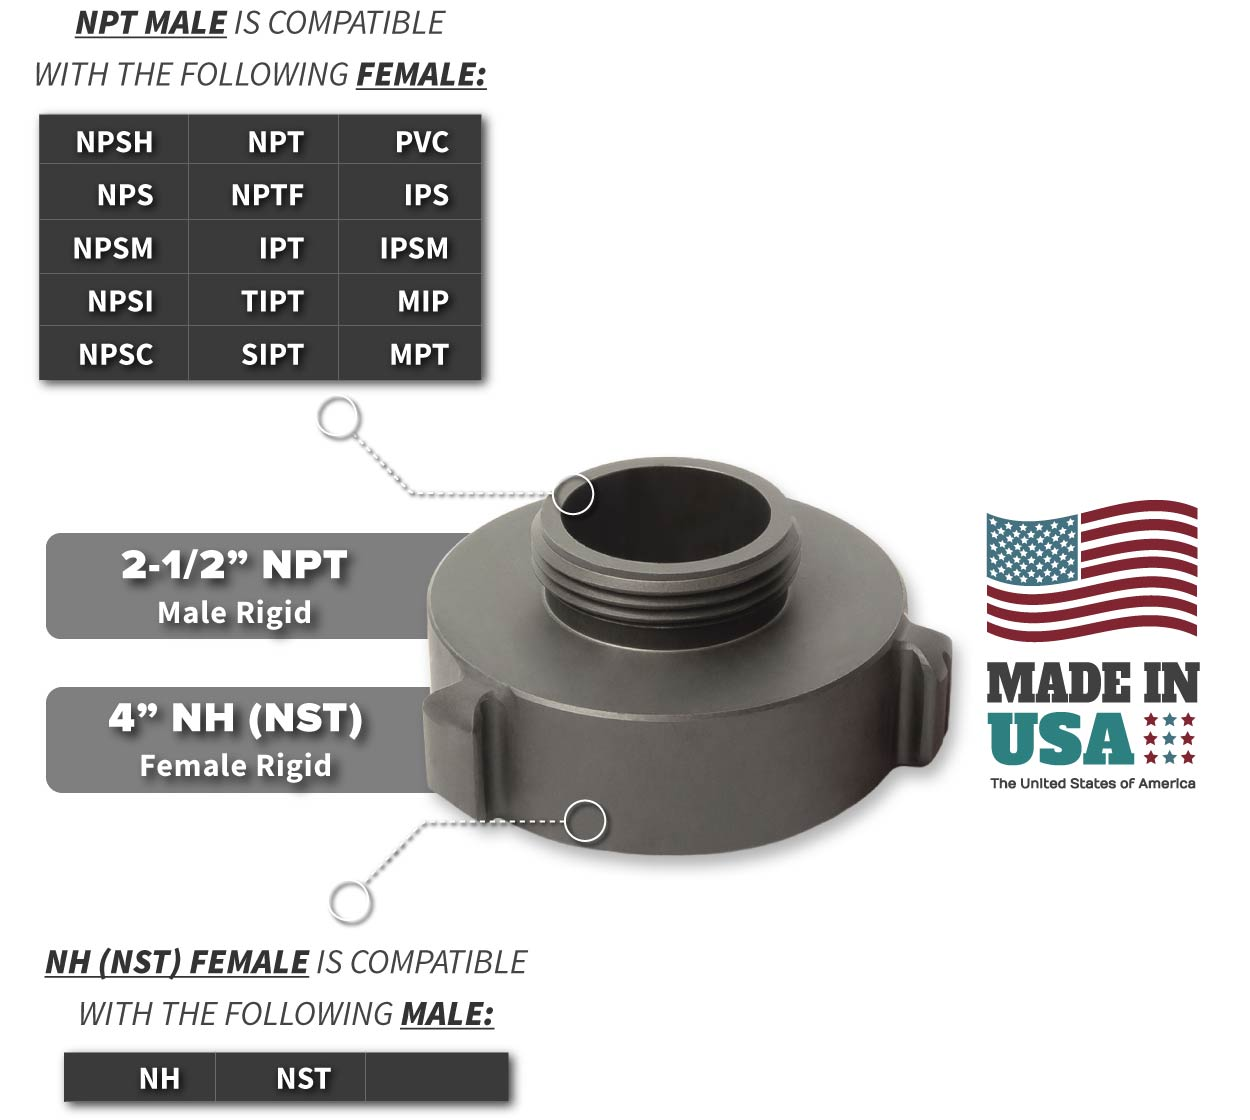 4 Inch NH-NST Female x 2.5 Inch NPT Male Compatibility Thread Chart